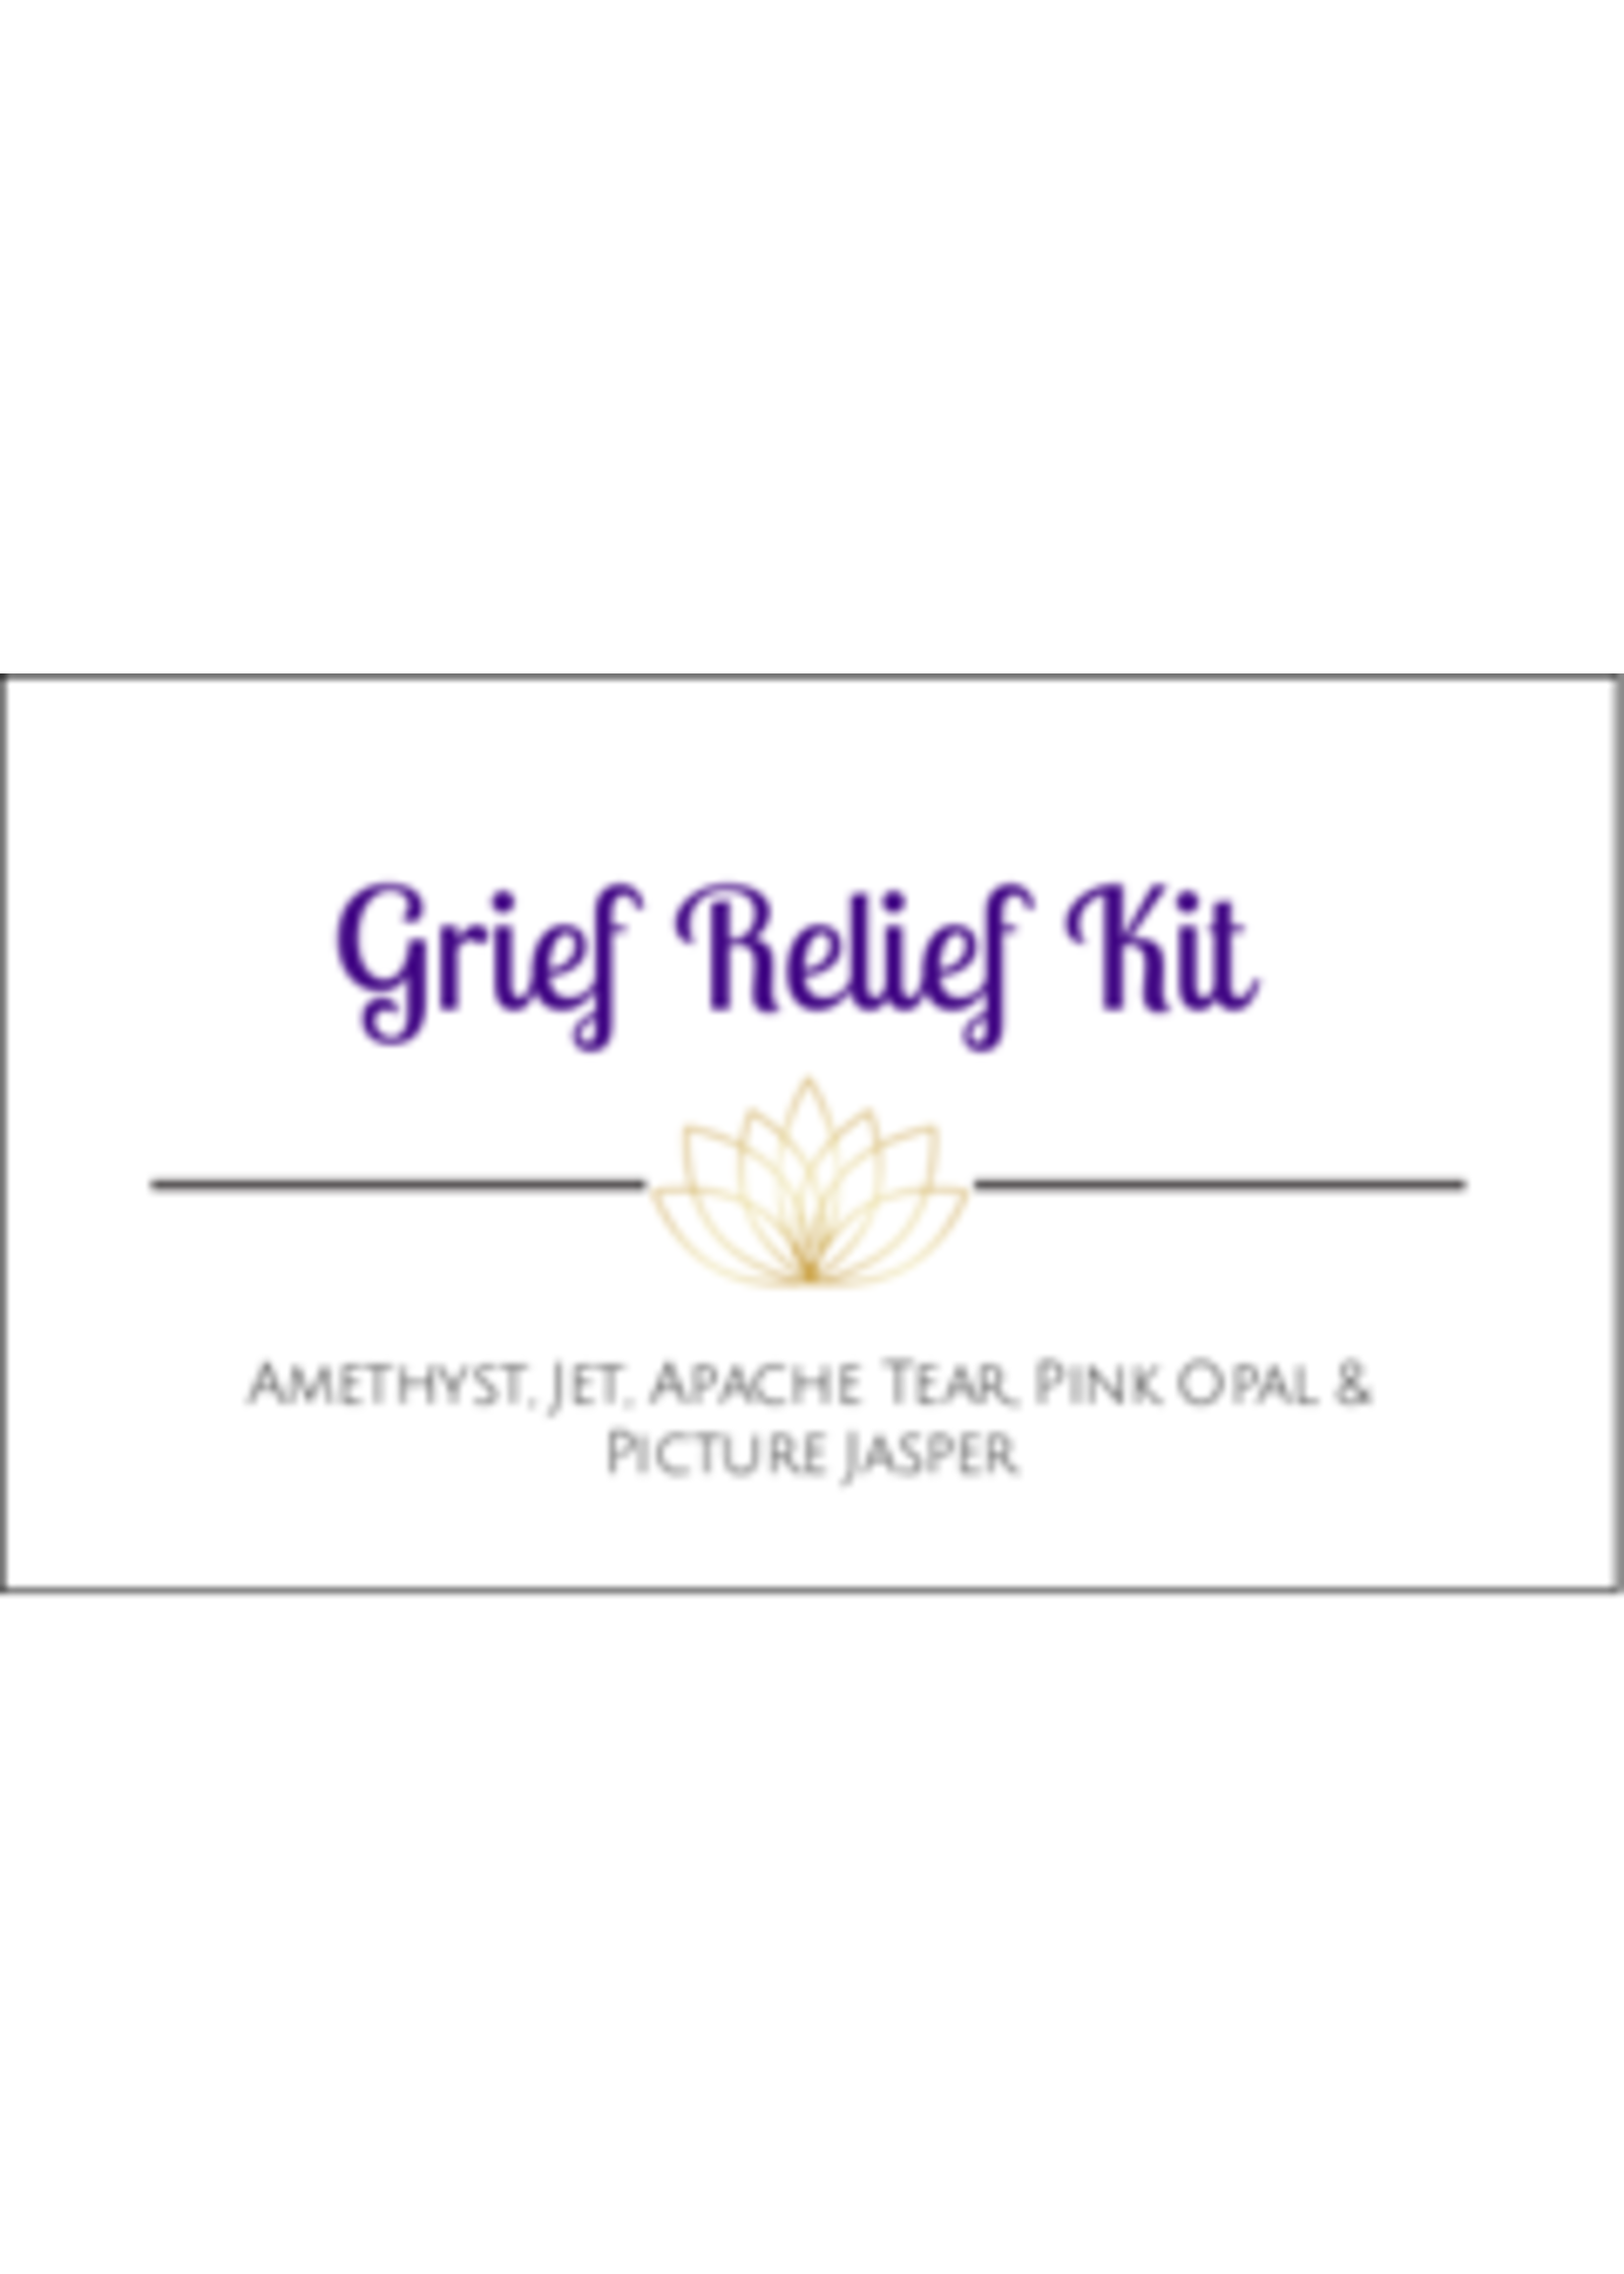 Grief Relief Crystal Kit Cards - Box of 100